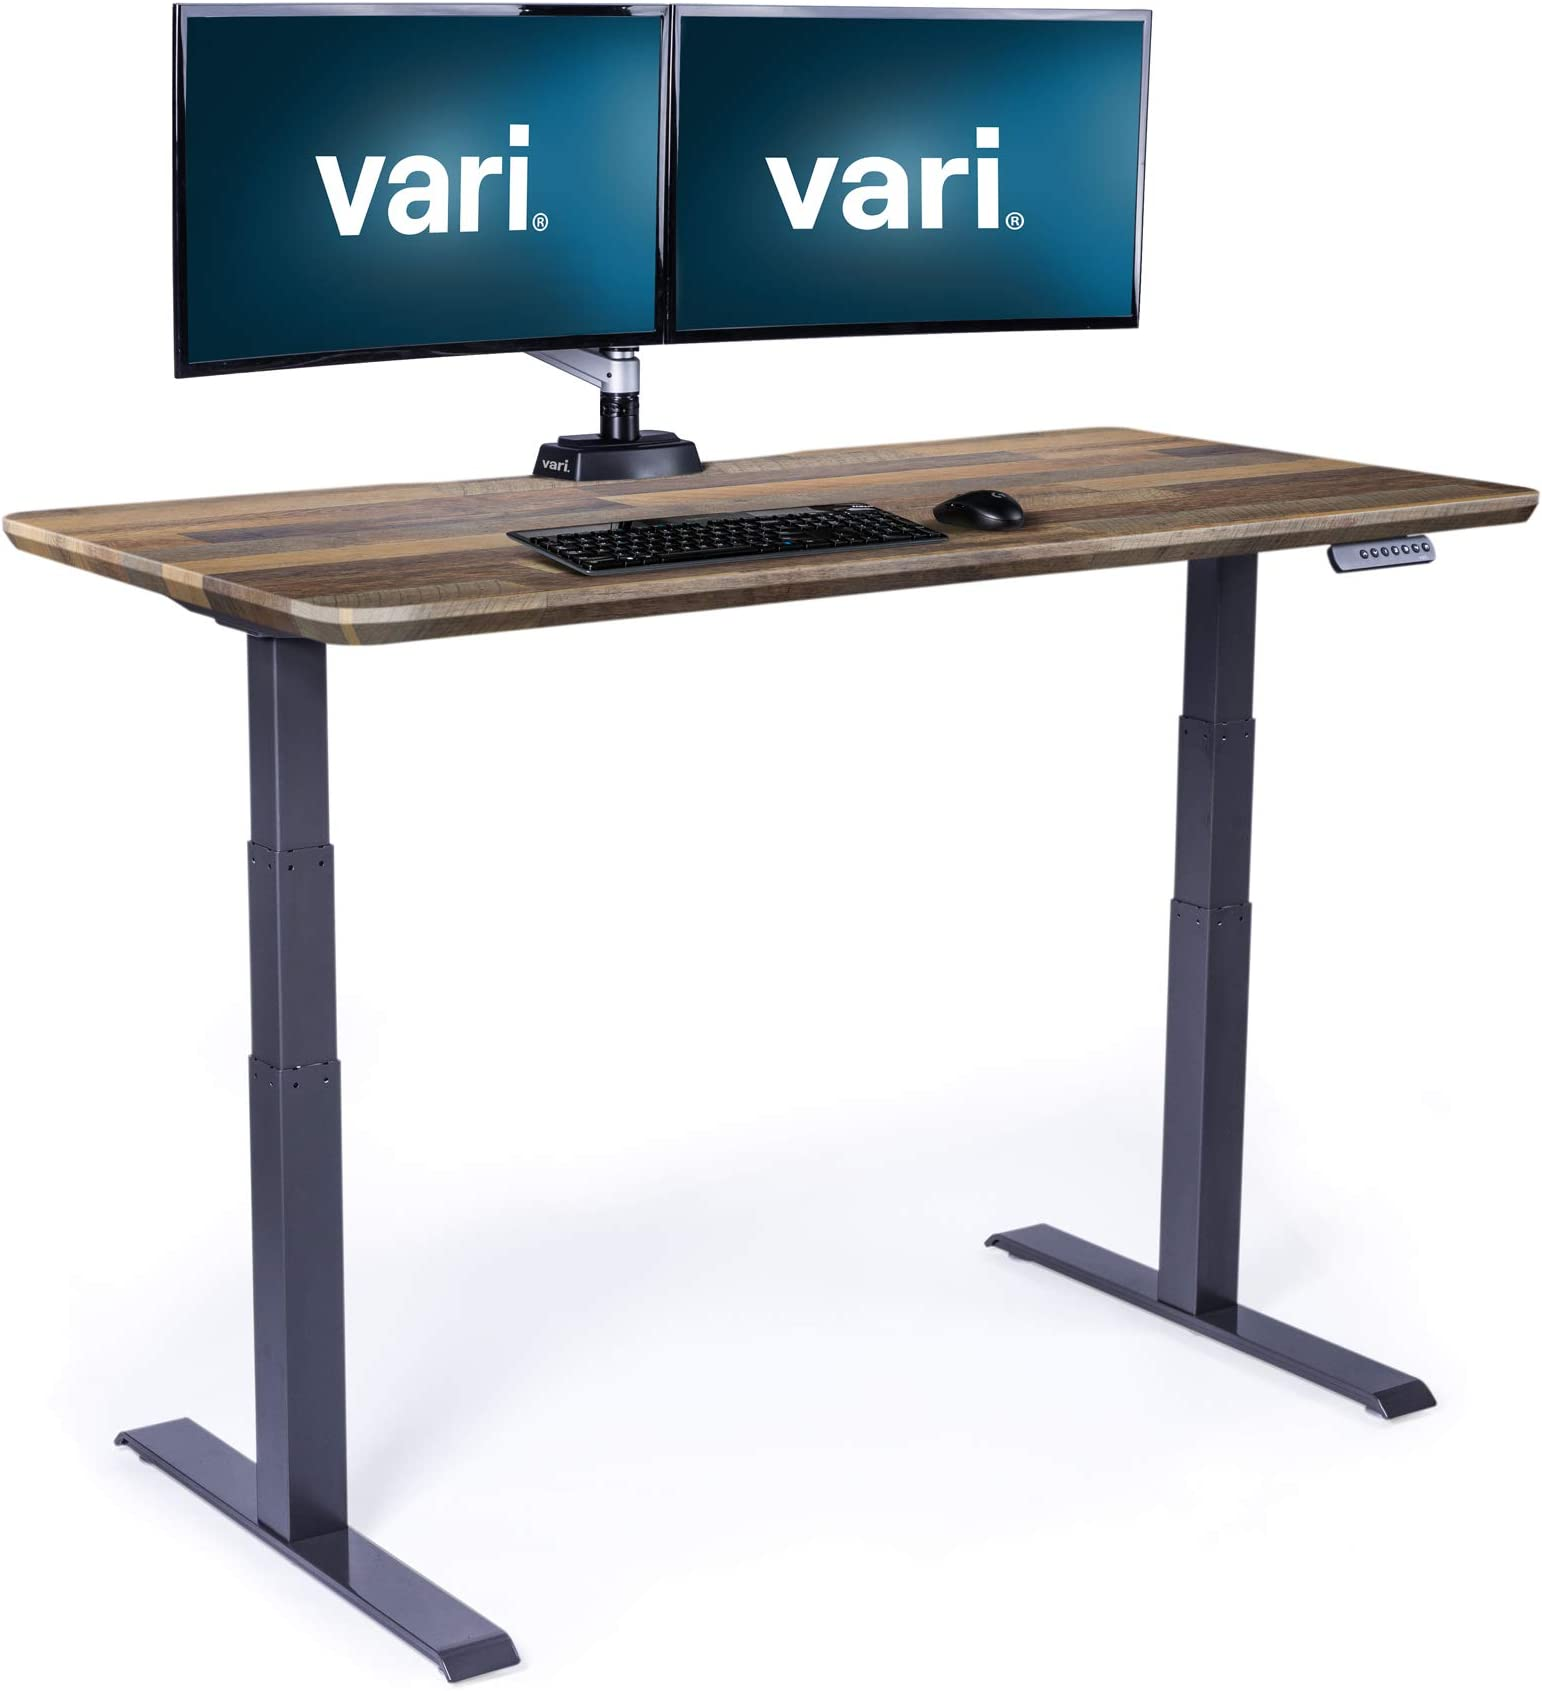 """Vari Electric Standing Desk 60"""" x 30"""" - Dual Motor Sit to Stand Desk - Push Button Memory Settings - Solid Top with 3-Stage Adjustable Steel Legs - Work or Home Office Desk"""